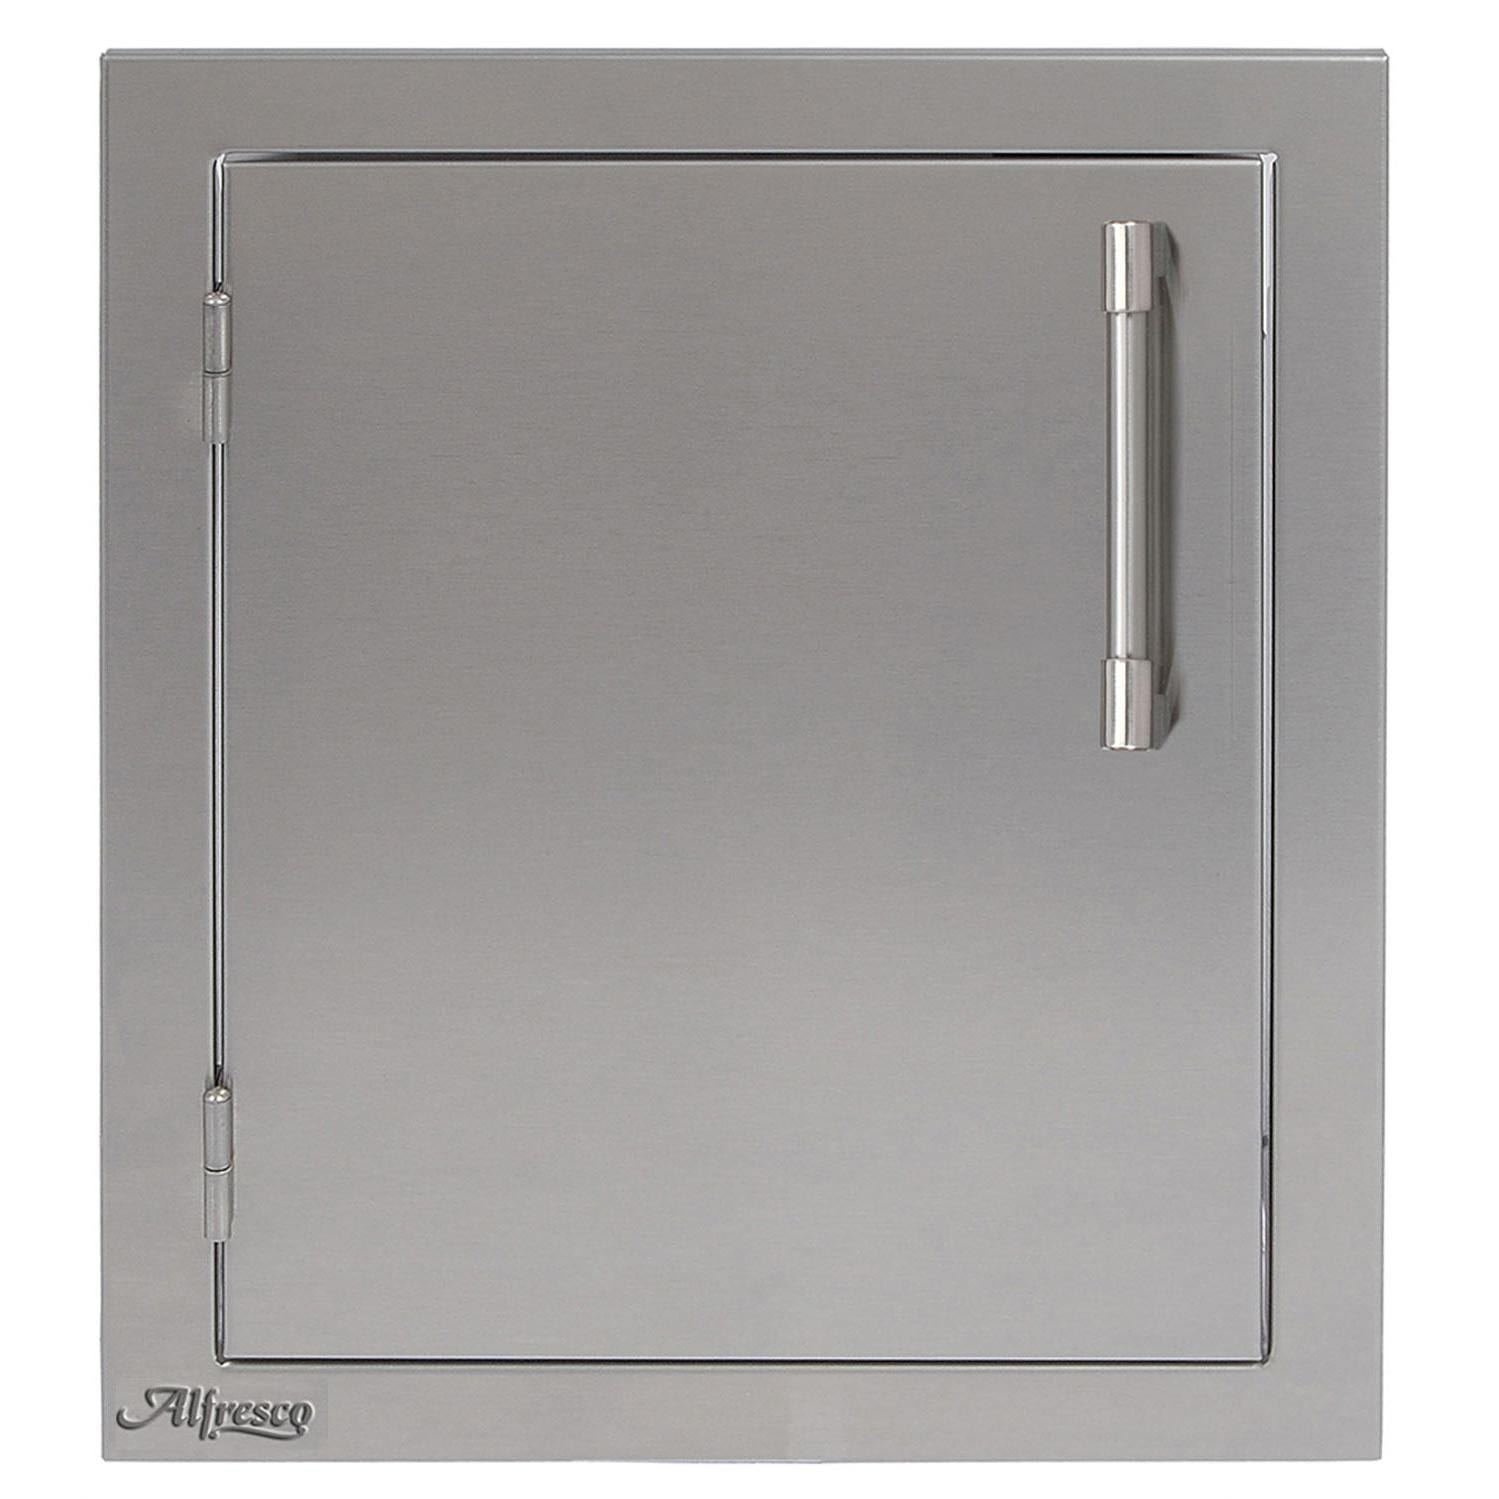 Alfresco 17-Inch Access Door